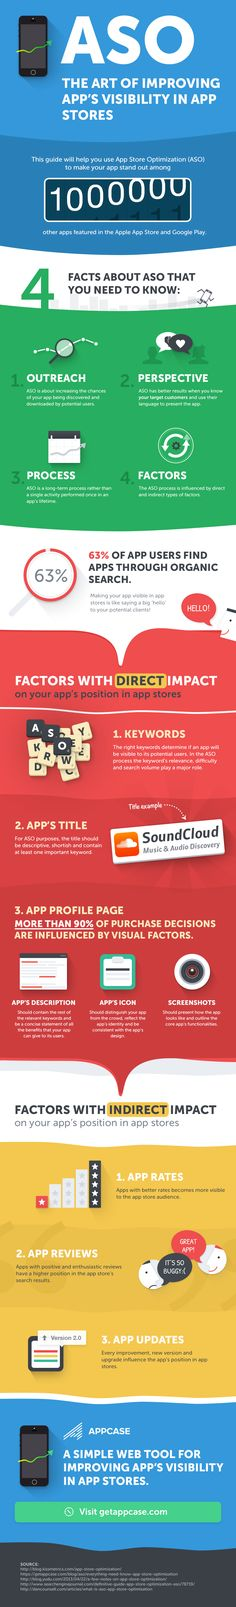 App Marketing Tips 9 App Marketing Tips for Android, iPhone and iPad